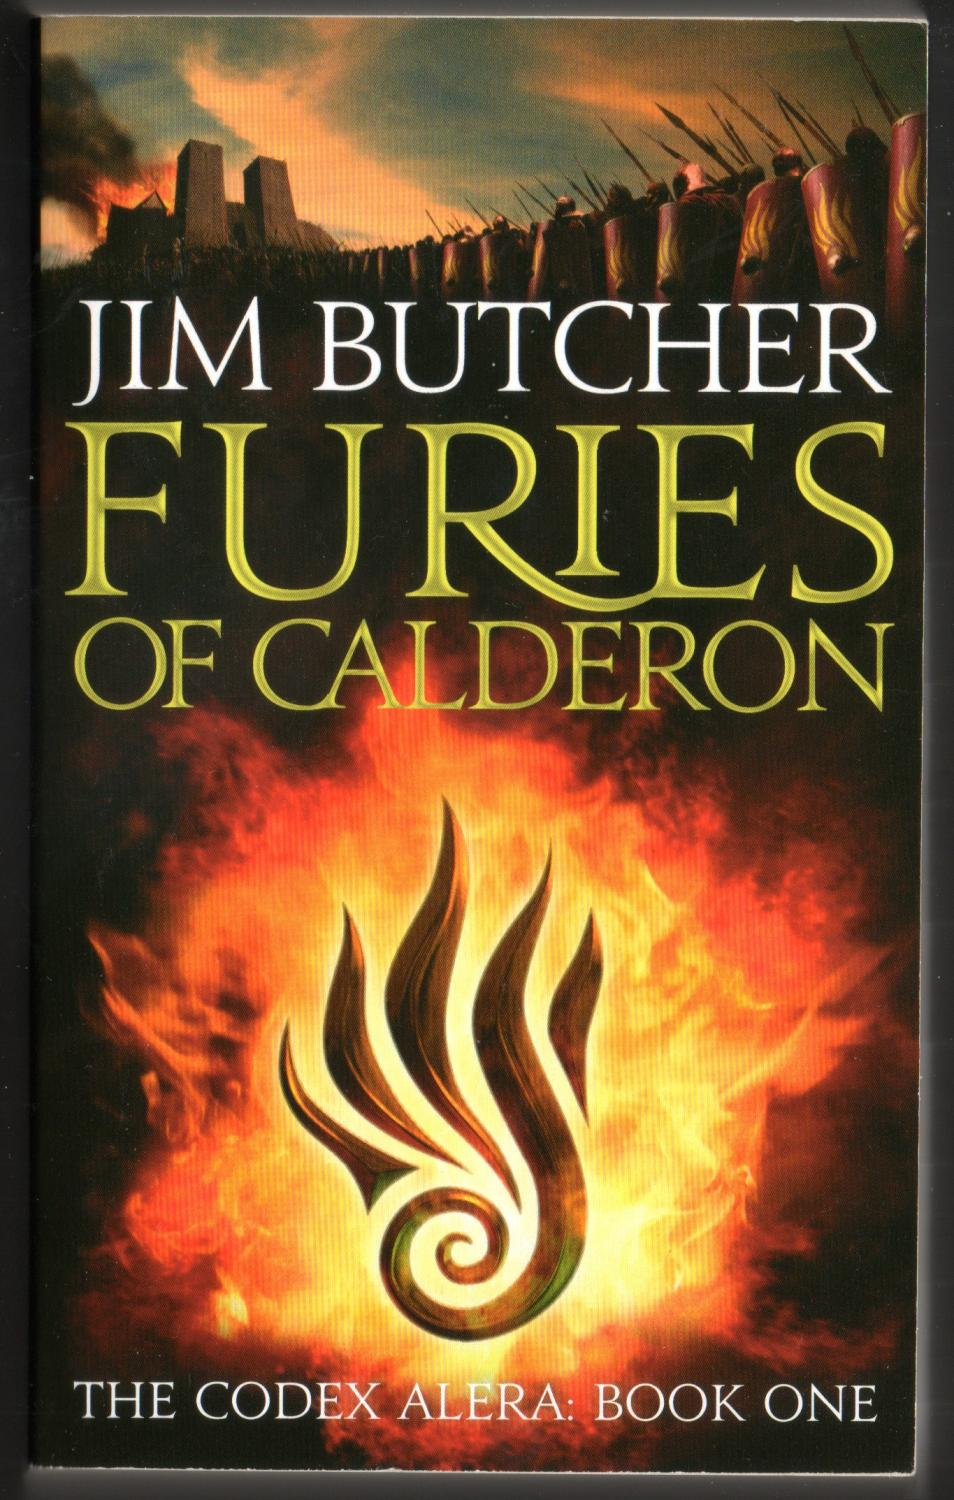 Furies Of Calderon  The Codex Alera  Book One: Jim Butcher Zoom_in  Bookseller Image